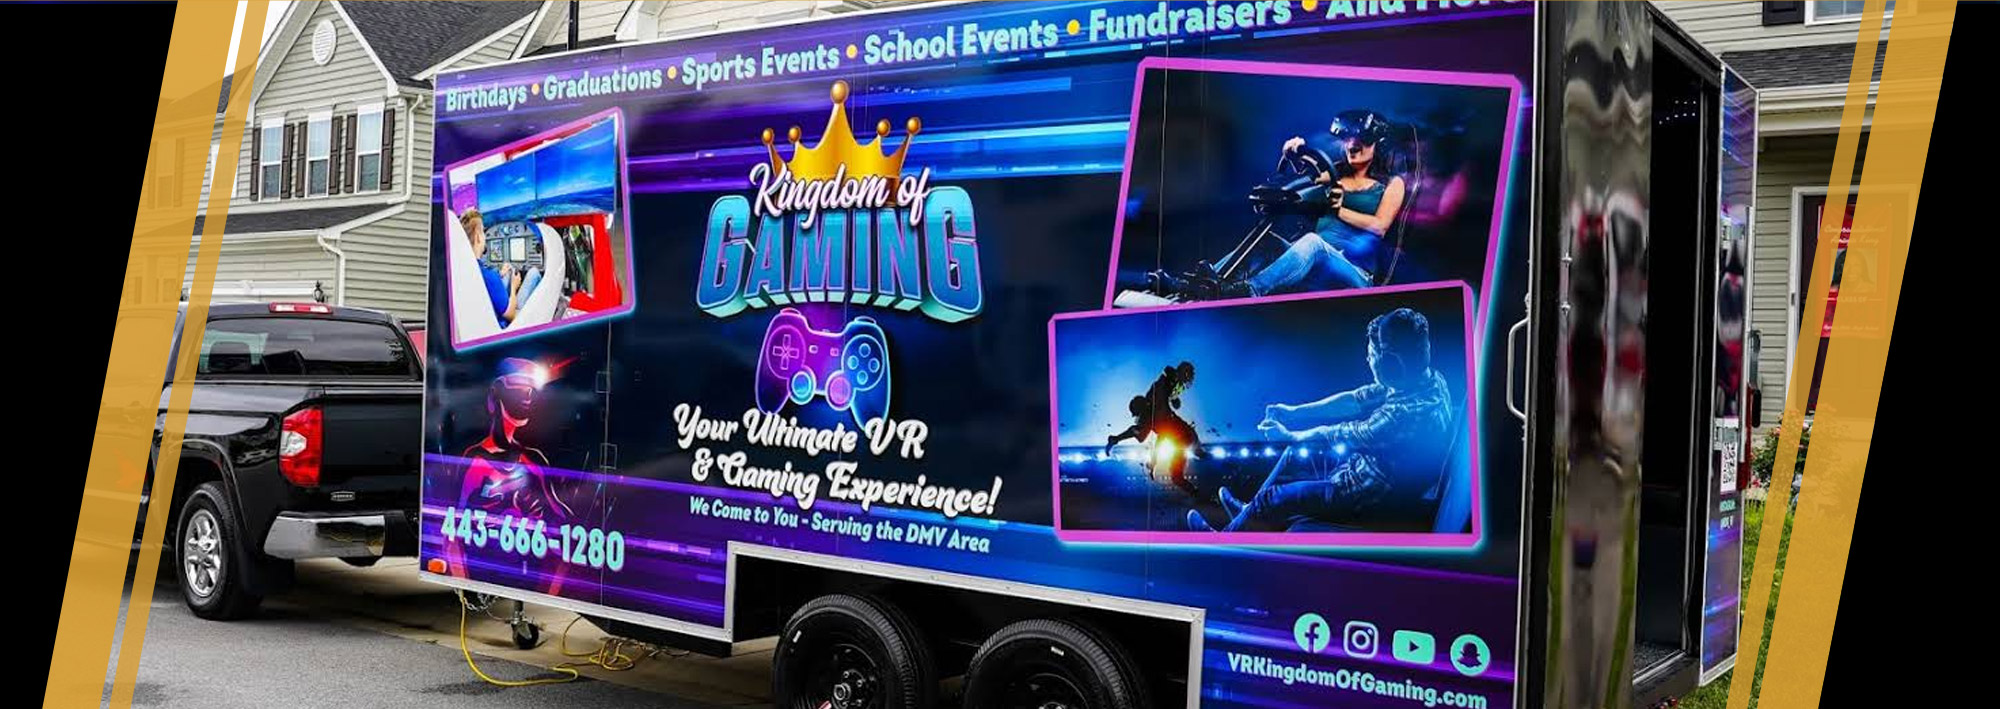 20-foot high definition gaming truck made to handle up to 18 gamers inside and outside